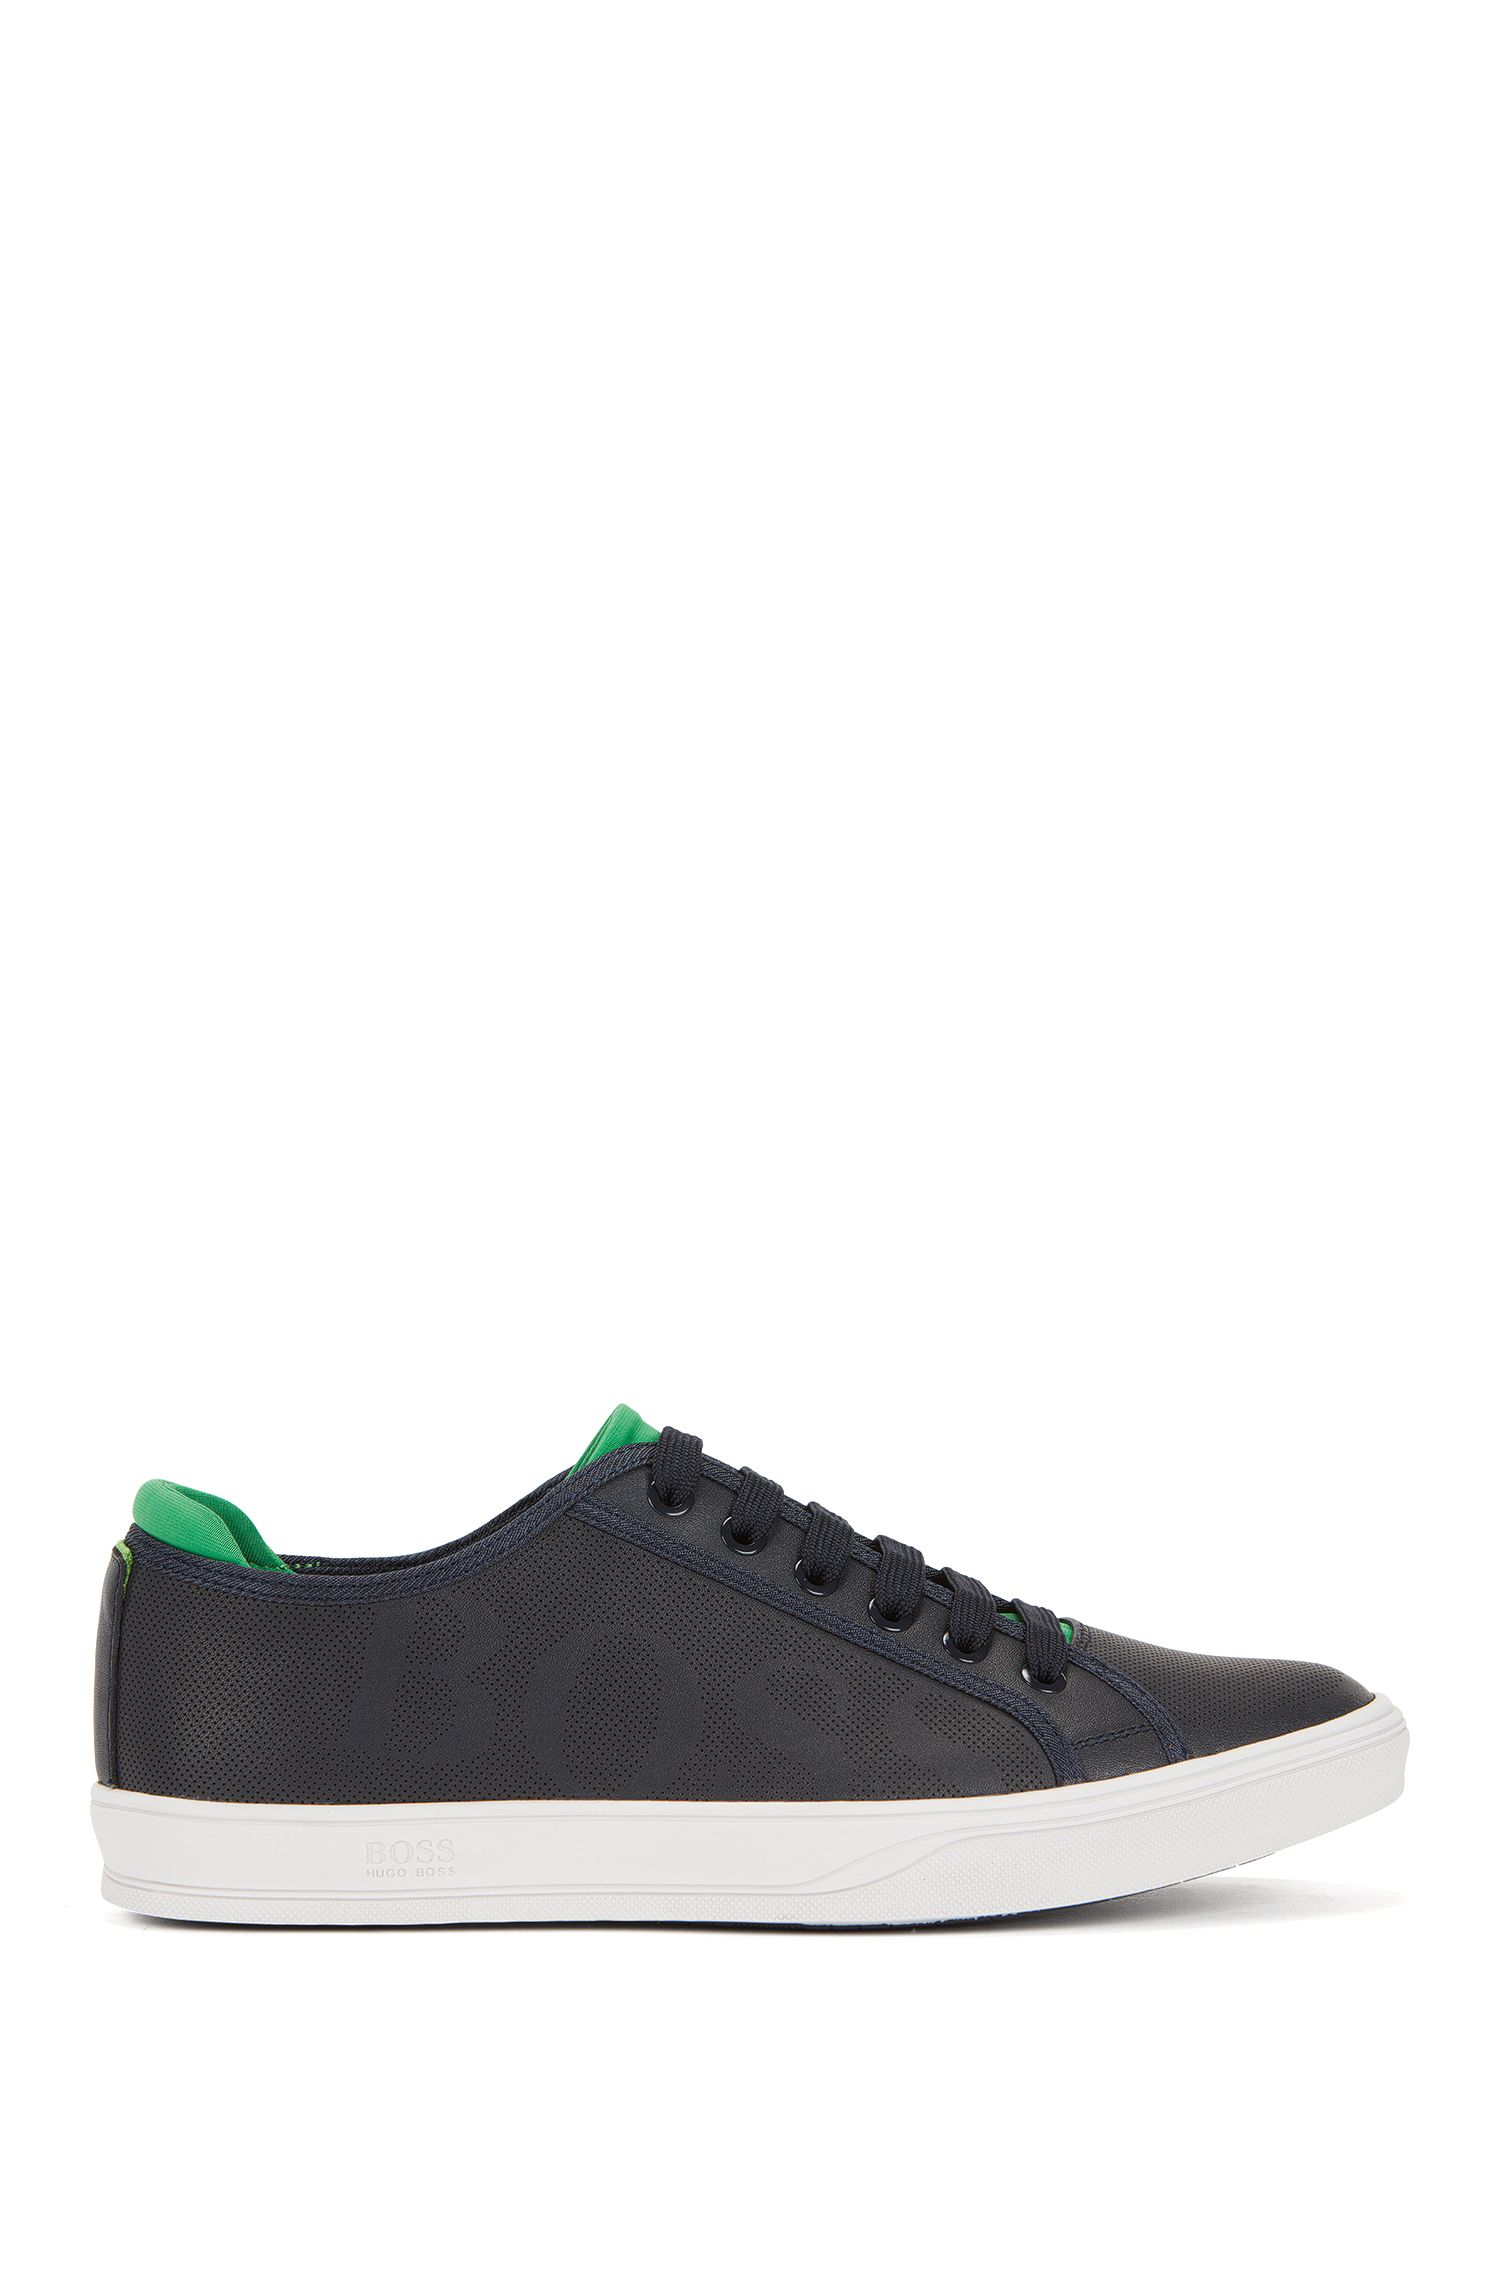 Tennis-style leather trainers with perforated detail